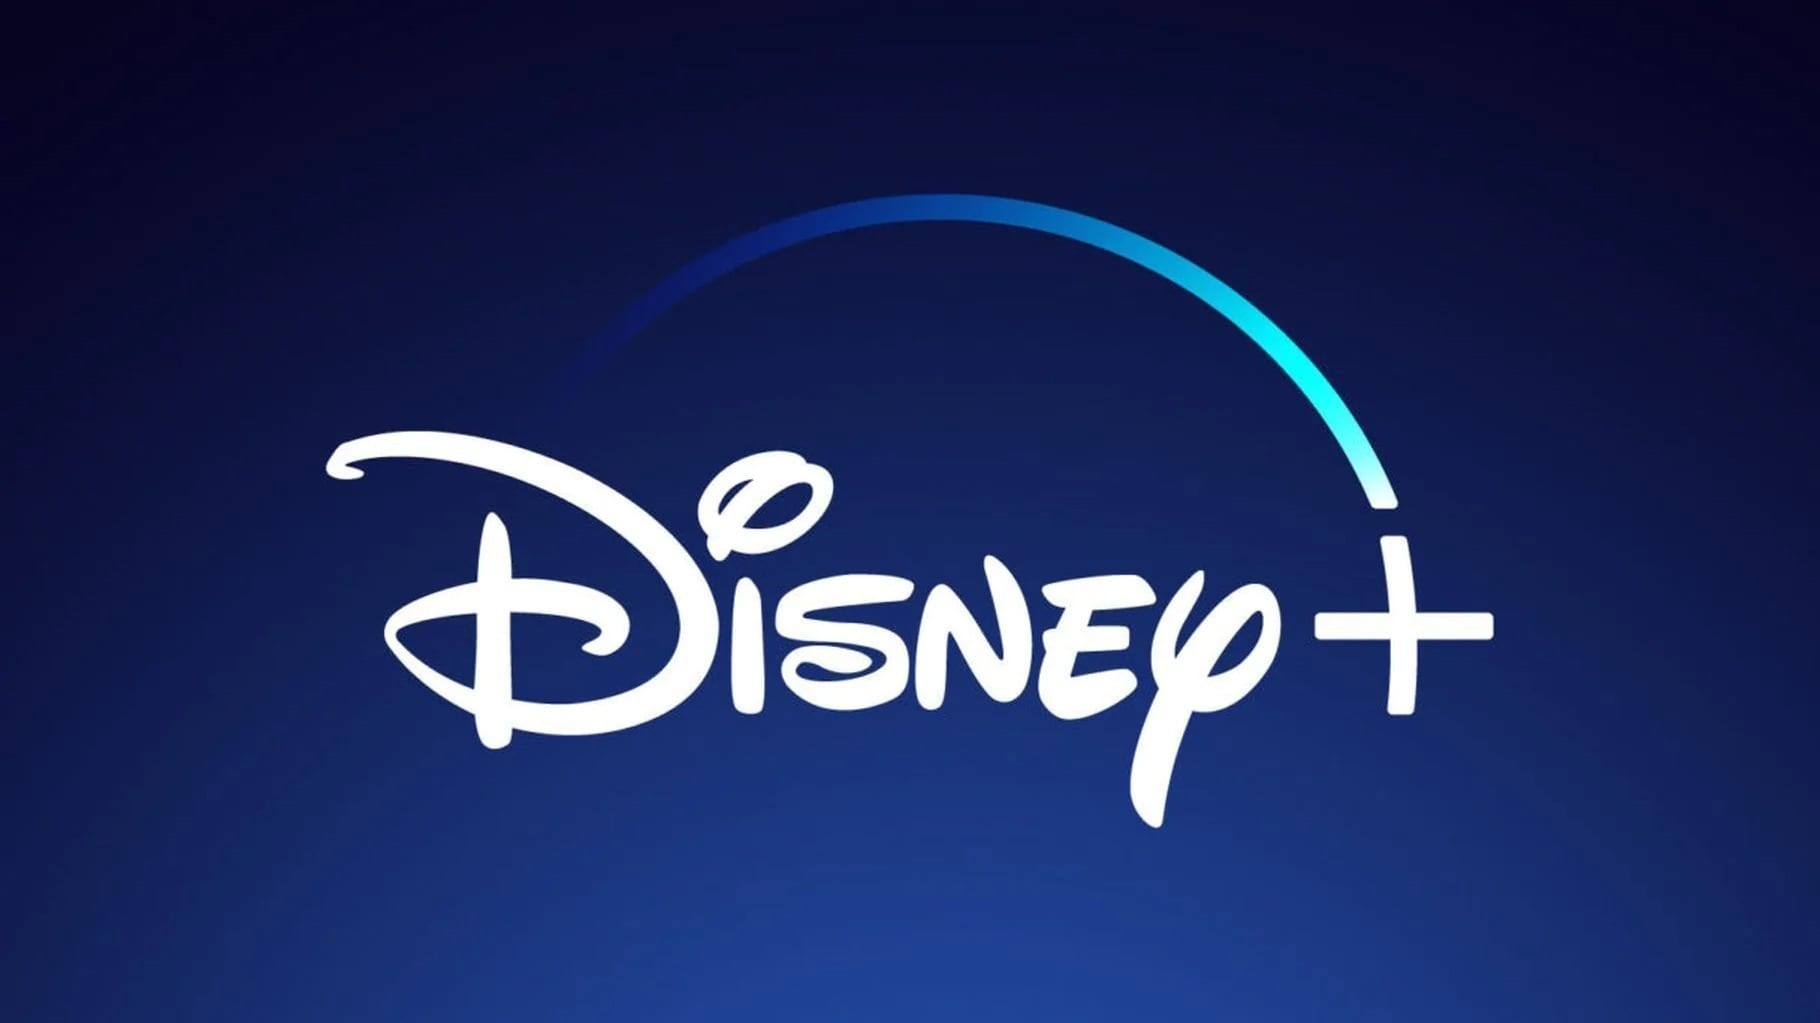 Disney+ to lower overall bandwidth utilization for Disney+ in Europe.